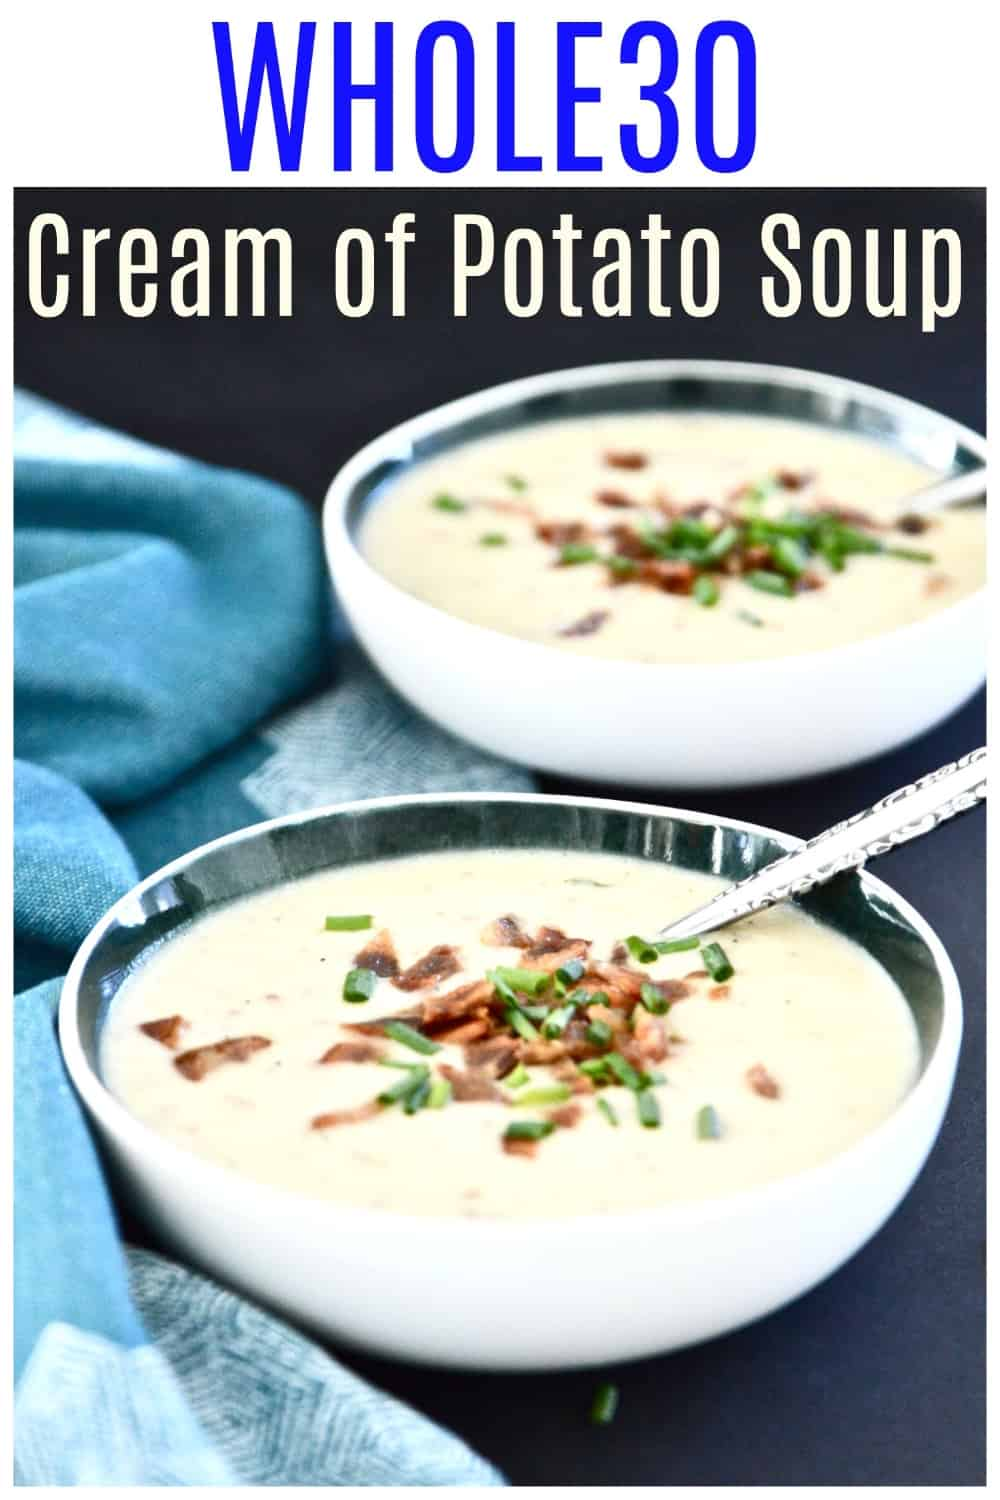 This Whole30 Cream of Potato Soup is the ultimate in comfort food. Perfect for cold winter days and nights this Whole30 Cream of Potato Soup is sure to be a hit with your whole family. This Whole30 Cream of Potato Soup tastes so good you won't even be able to tell it's dairy free. Promise. #whole30 #soup #potato #creamofpotato #paleo #sidedish